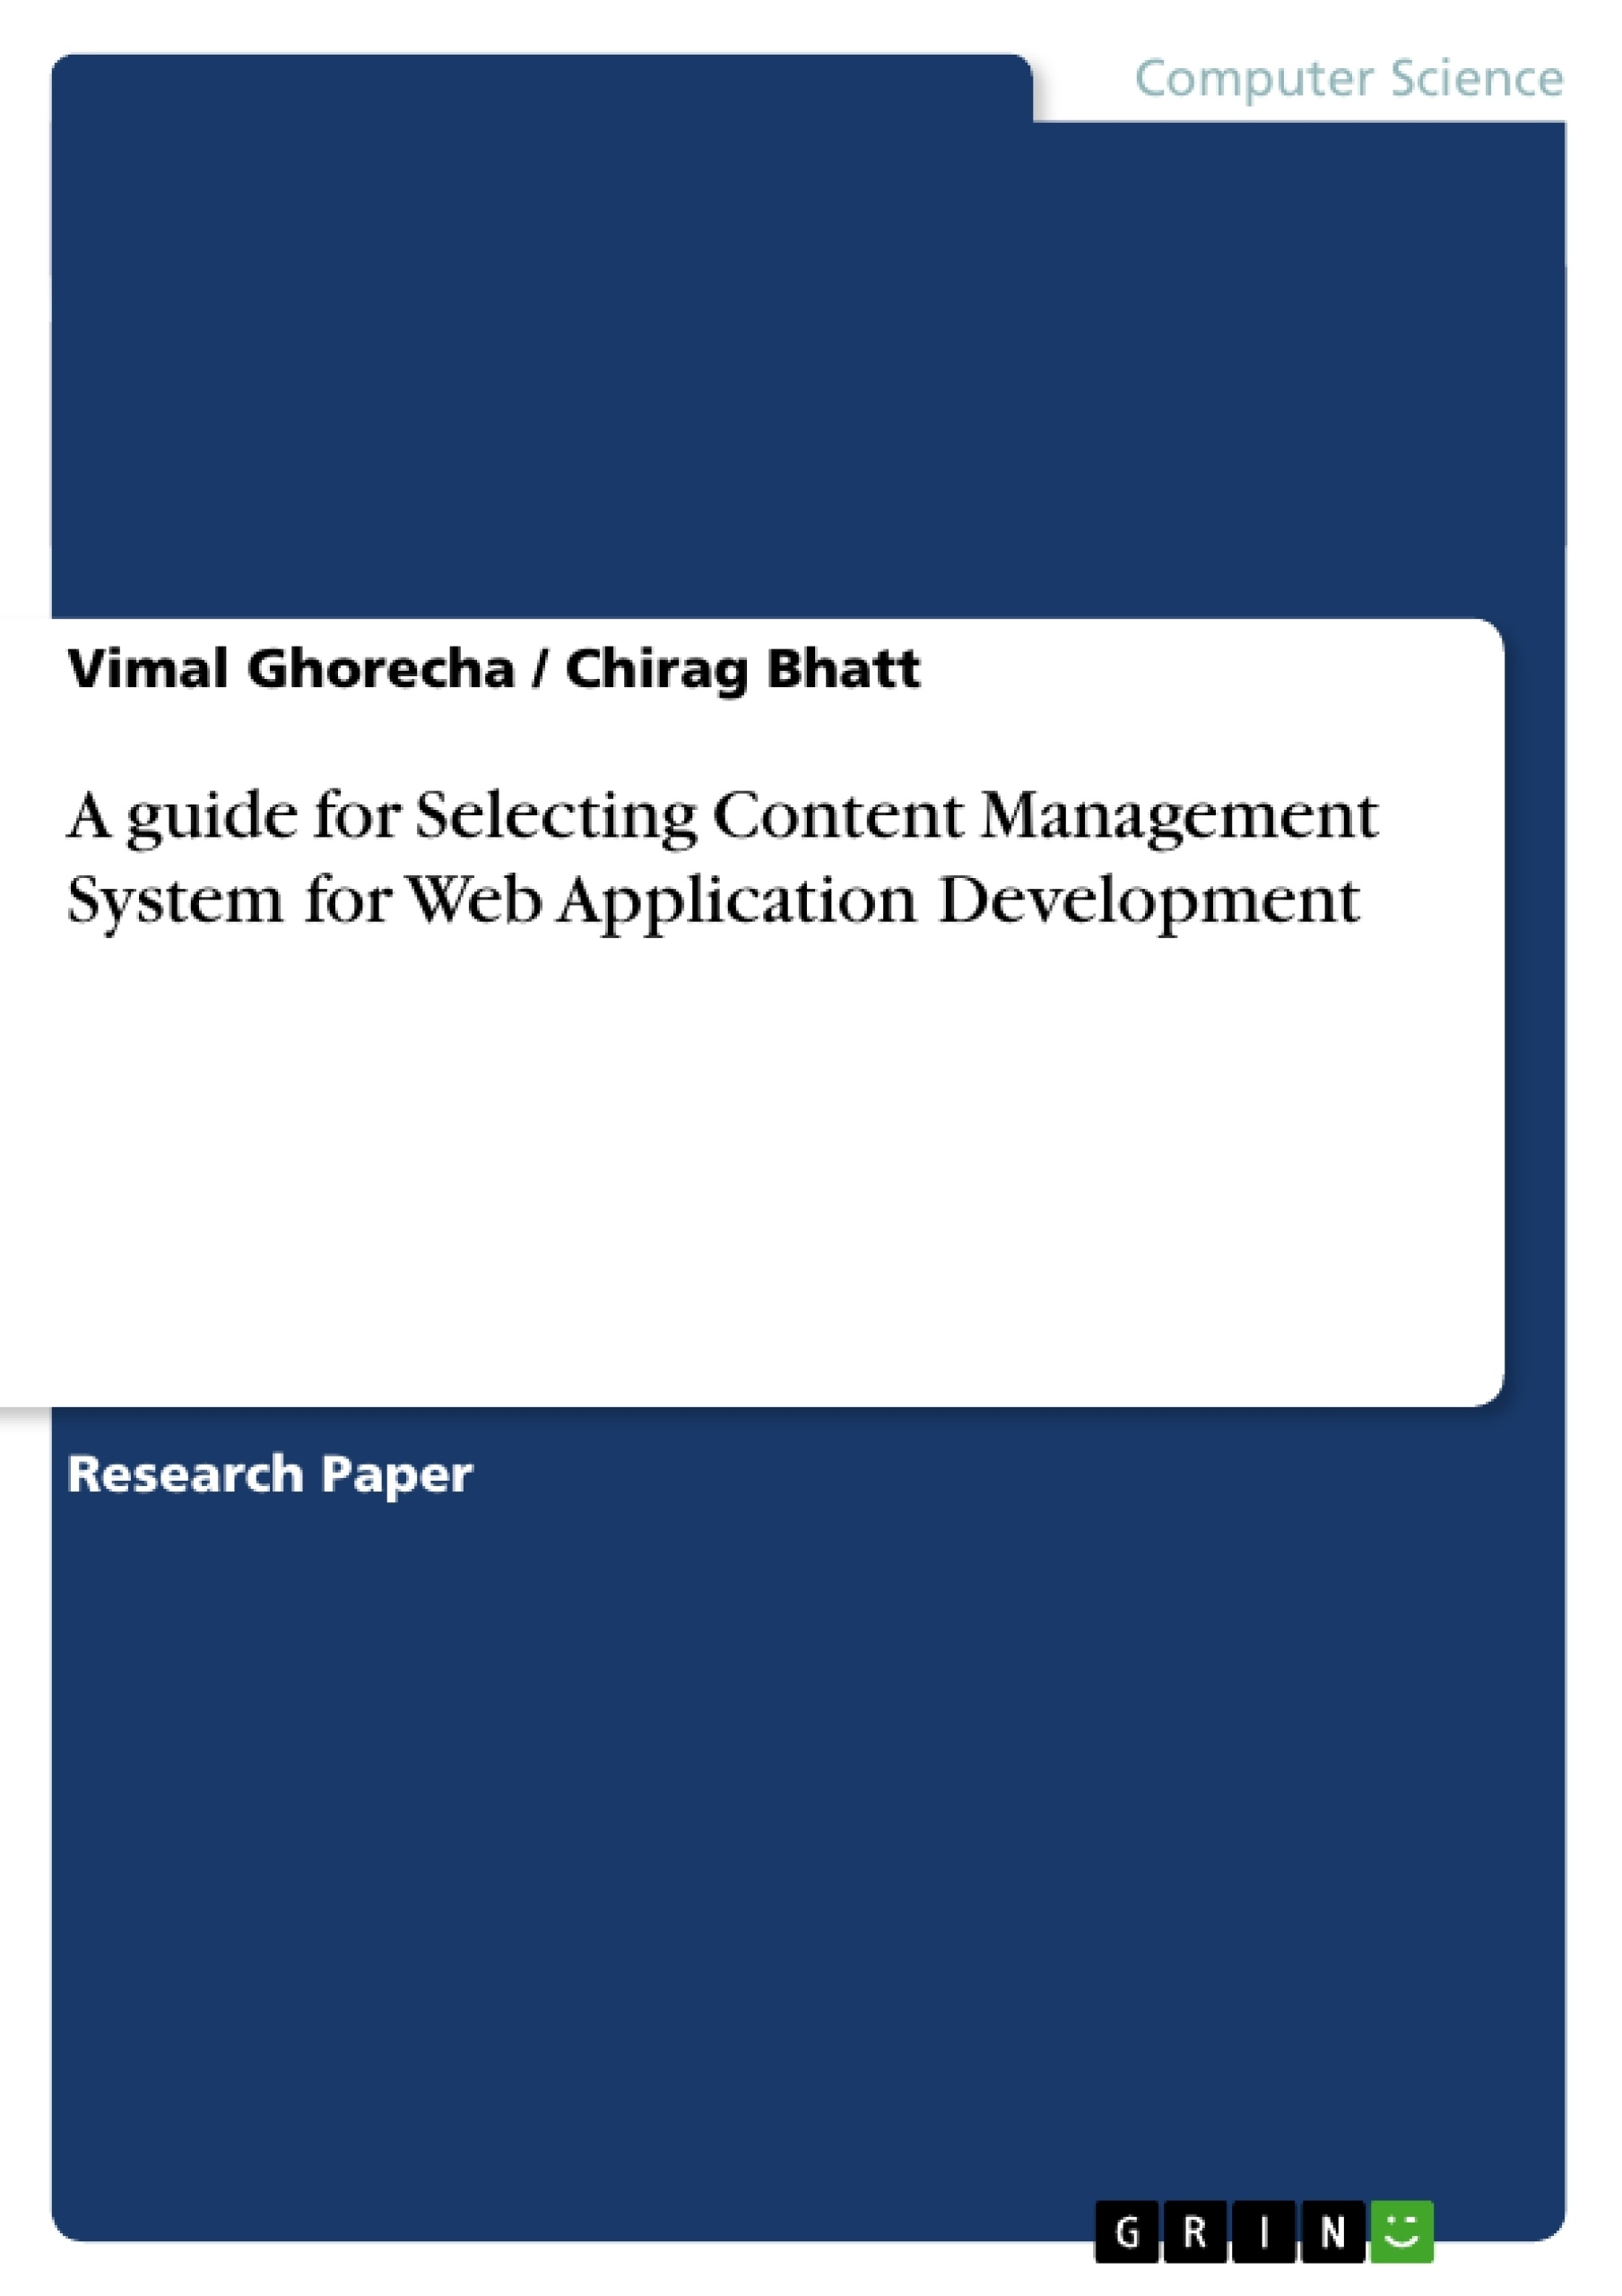 Title: A guide for Selecting Content Management System for Web Application Development